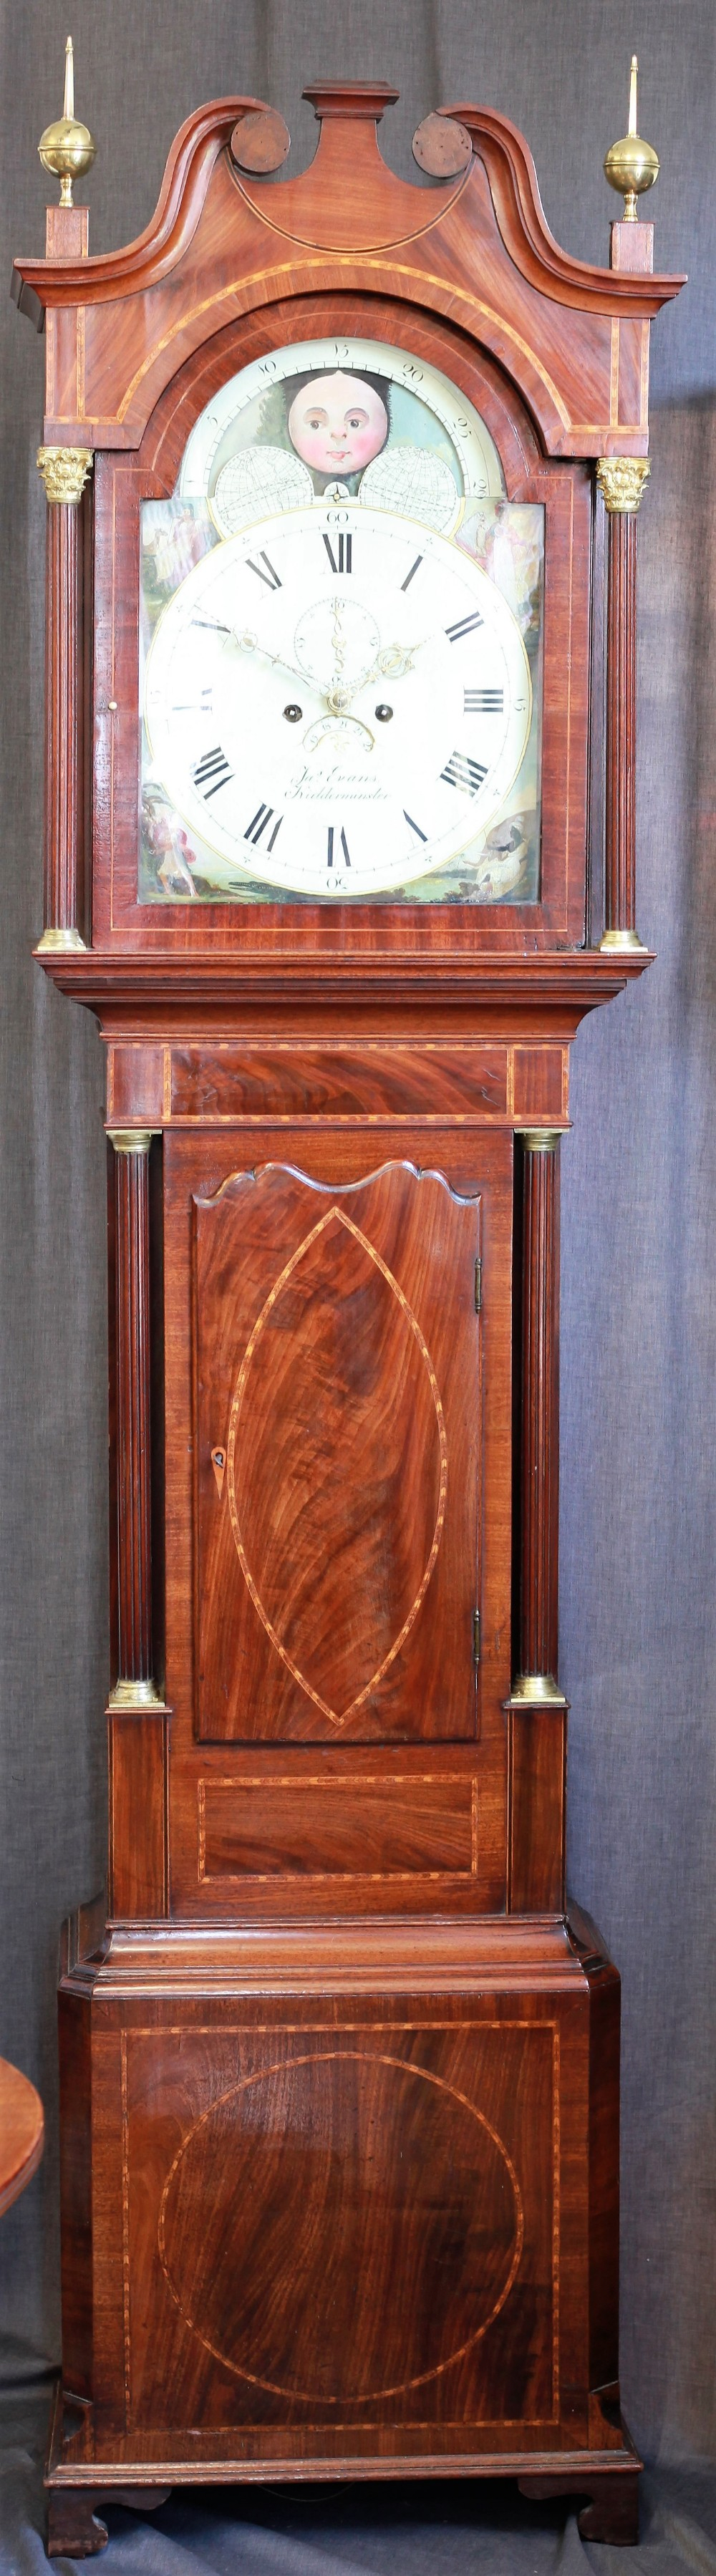 george iii mahogany inlaid chippendale style moonphase longcase clock by j evans c1814 with kempson and felton dial